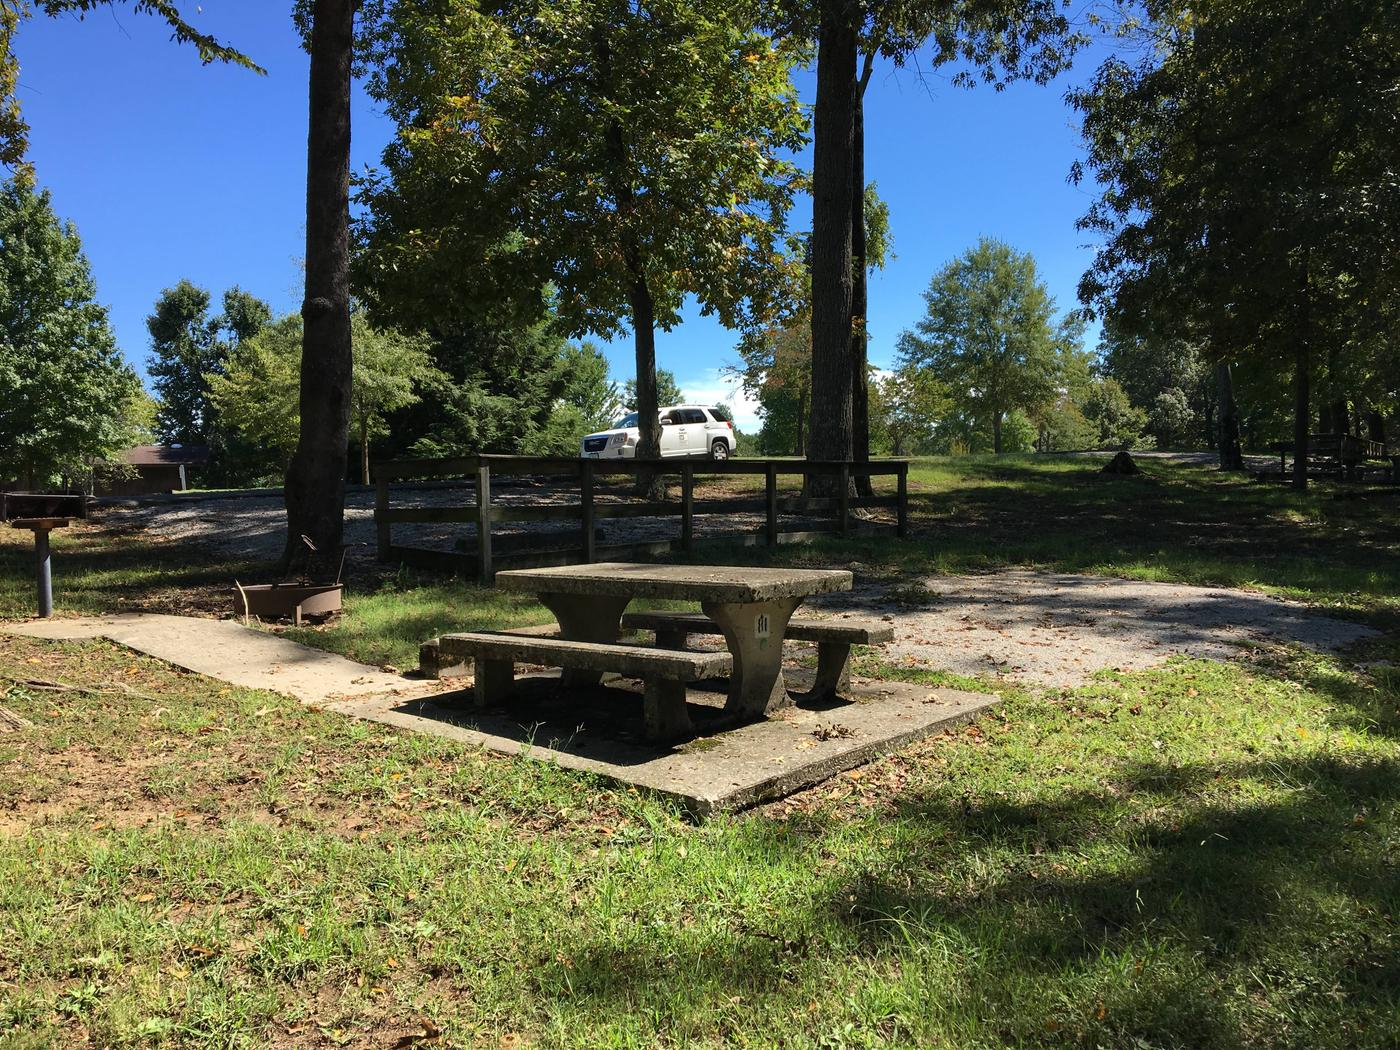 WILLOW GROVE CAMPGROUND SITE #81 CONCRETE TABLEWILLOW GROVE CAMPGROUND SITE #81